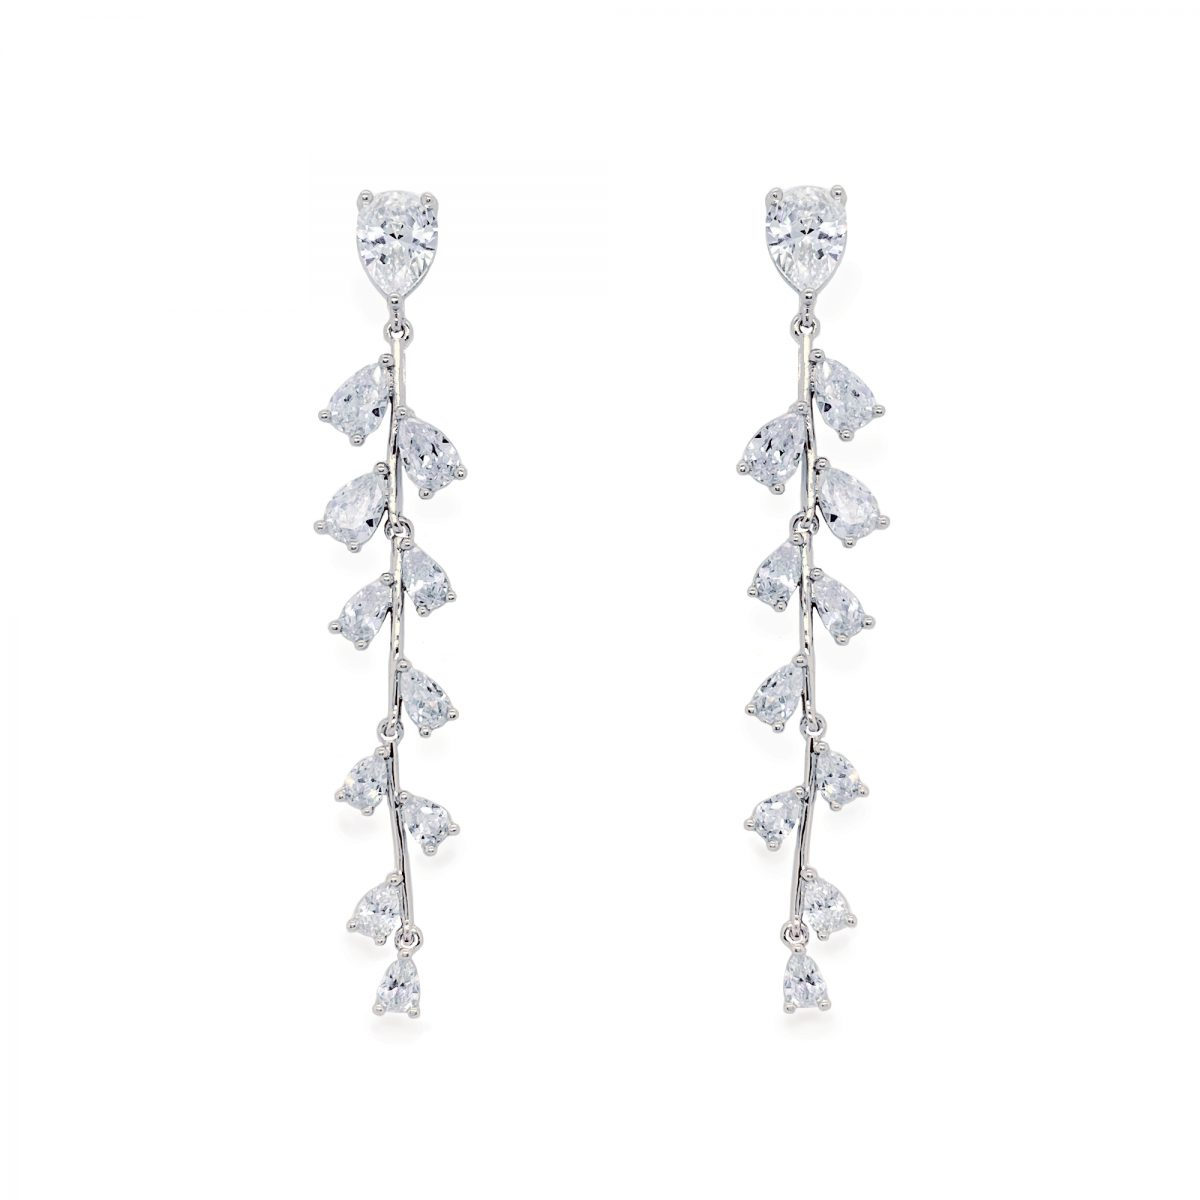 Ivory and Co Willow Drop Earrings - Silver 1